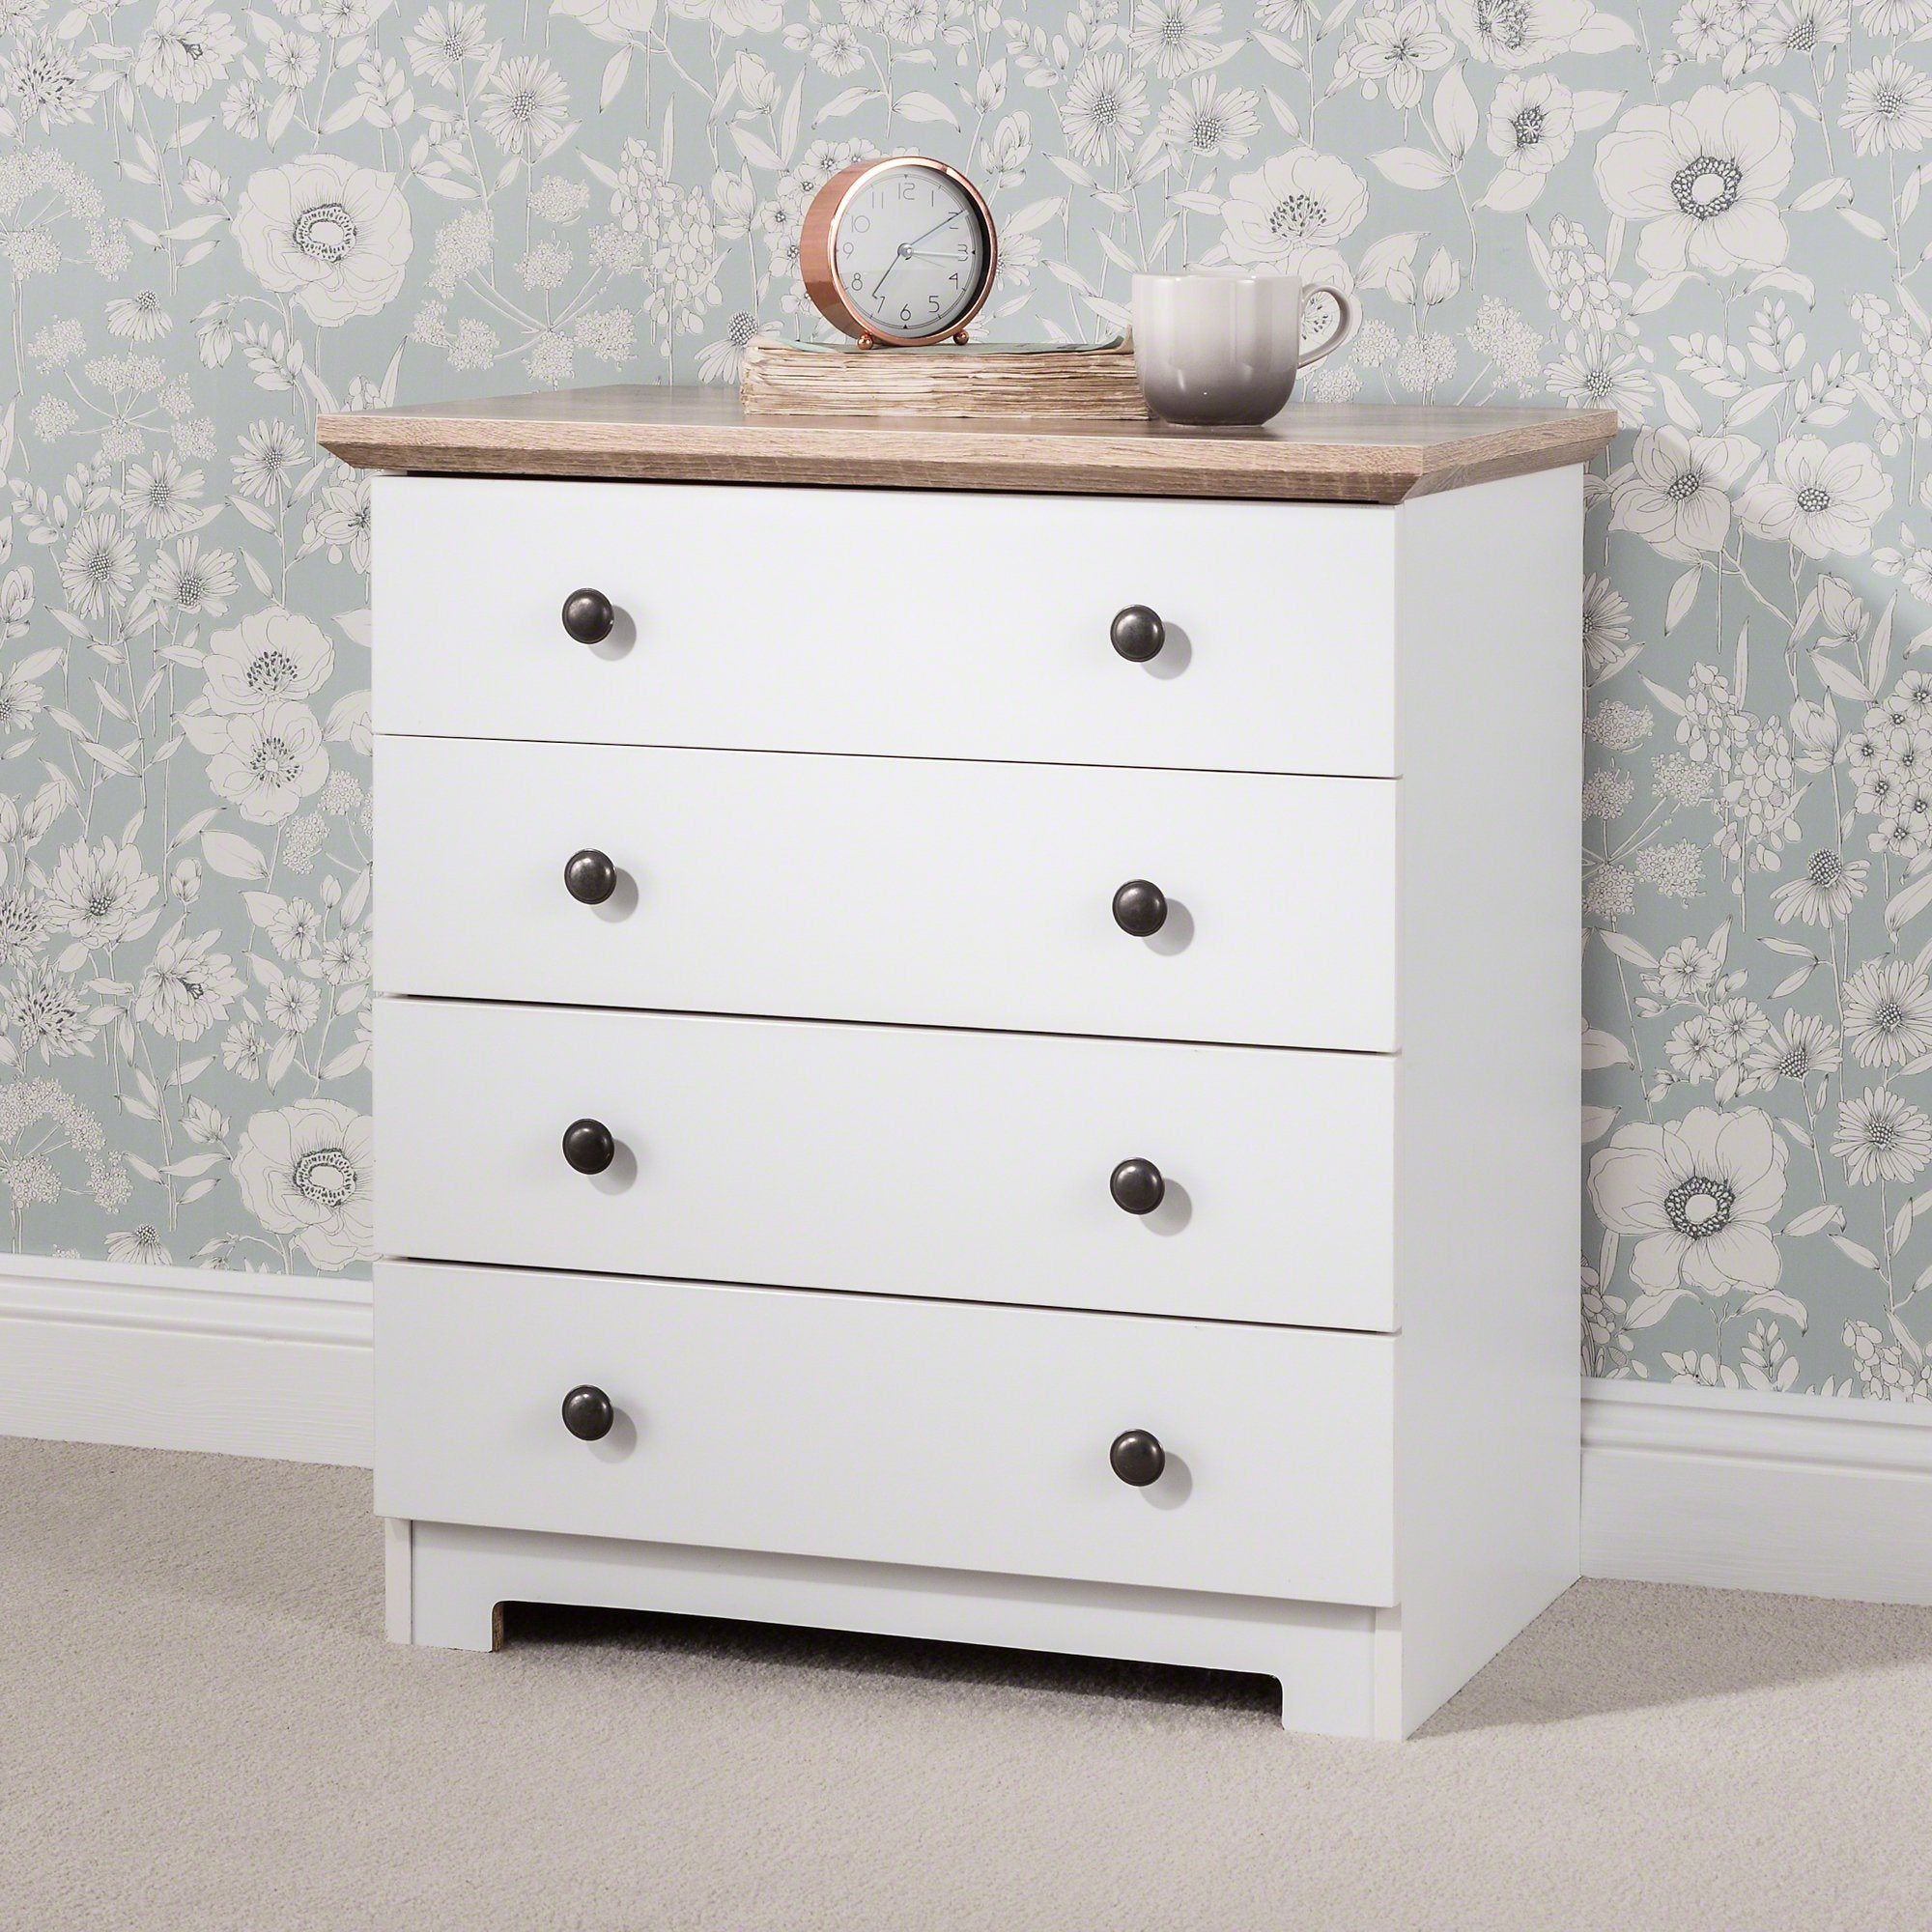 Chests of Drawers 4 Drawer White - Laura James